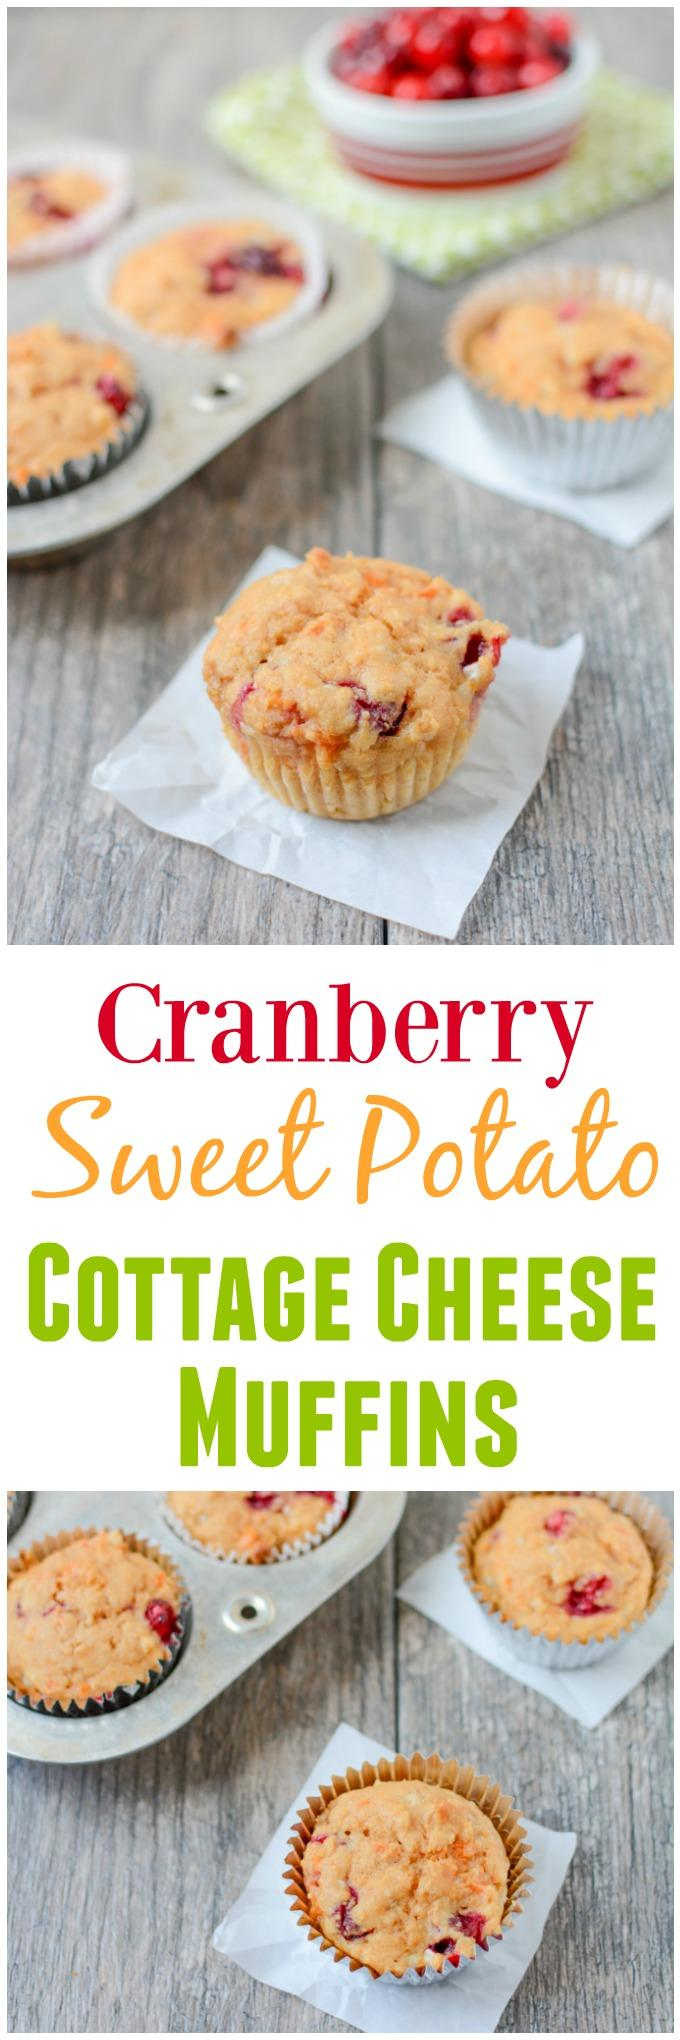 Lightly sweetened and packed with protein and fiber, this recipe for Cranberry Sweet Potato Cottage Cheese Muffins makes a great grab-and-go breakfast!